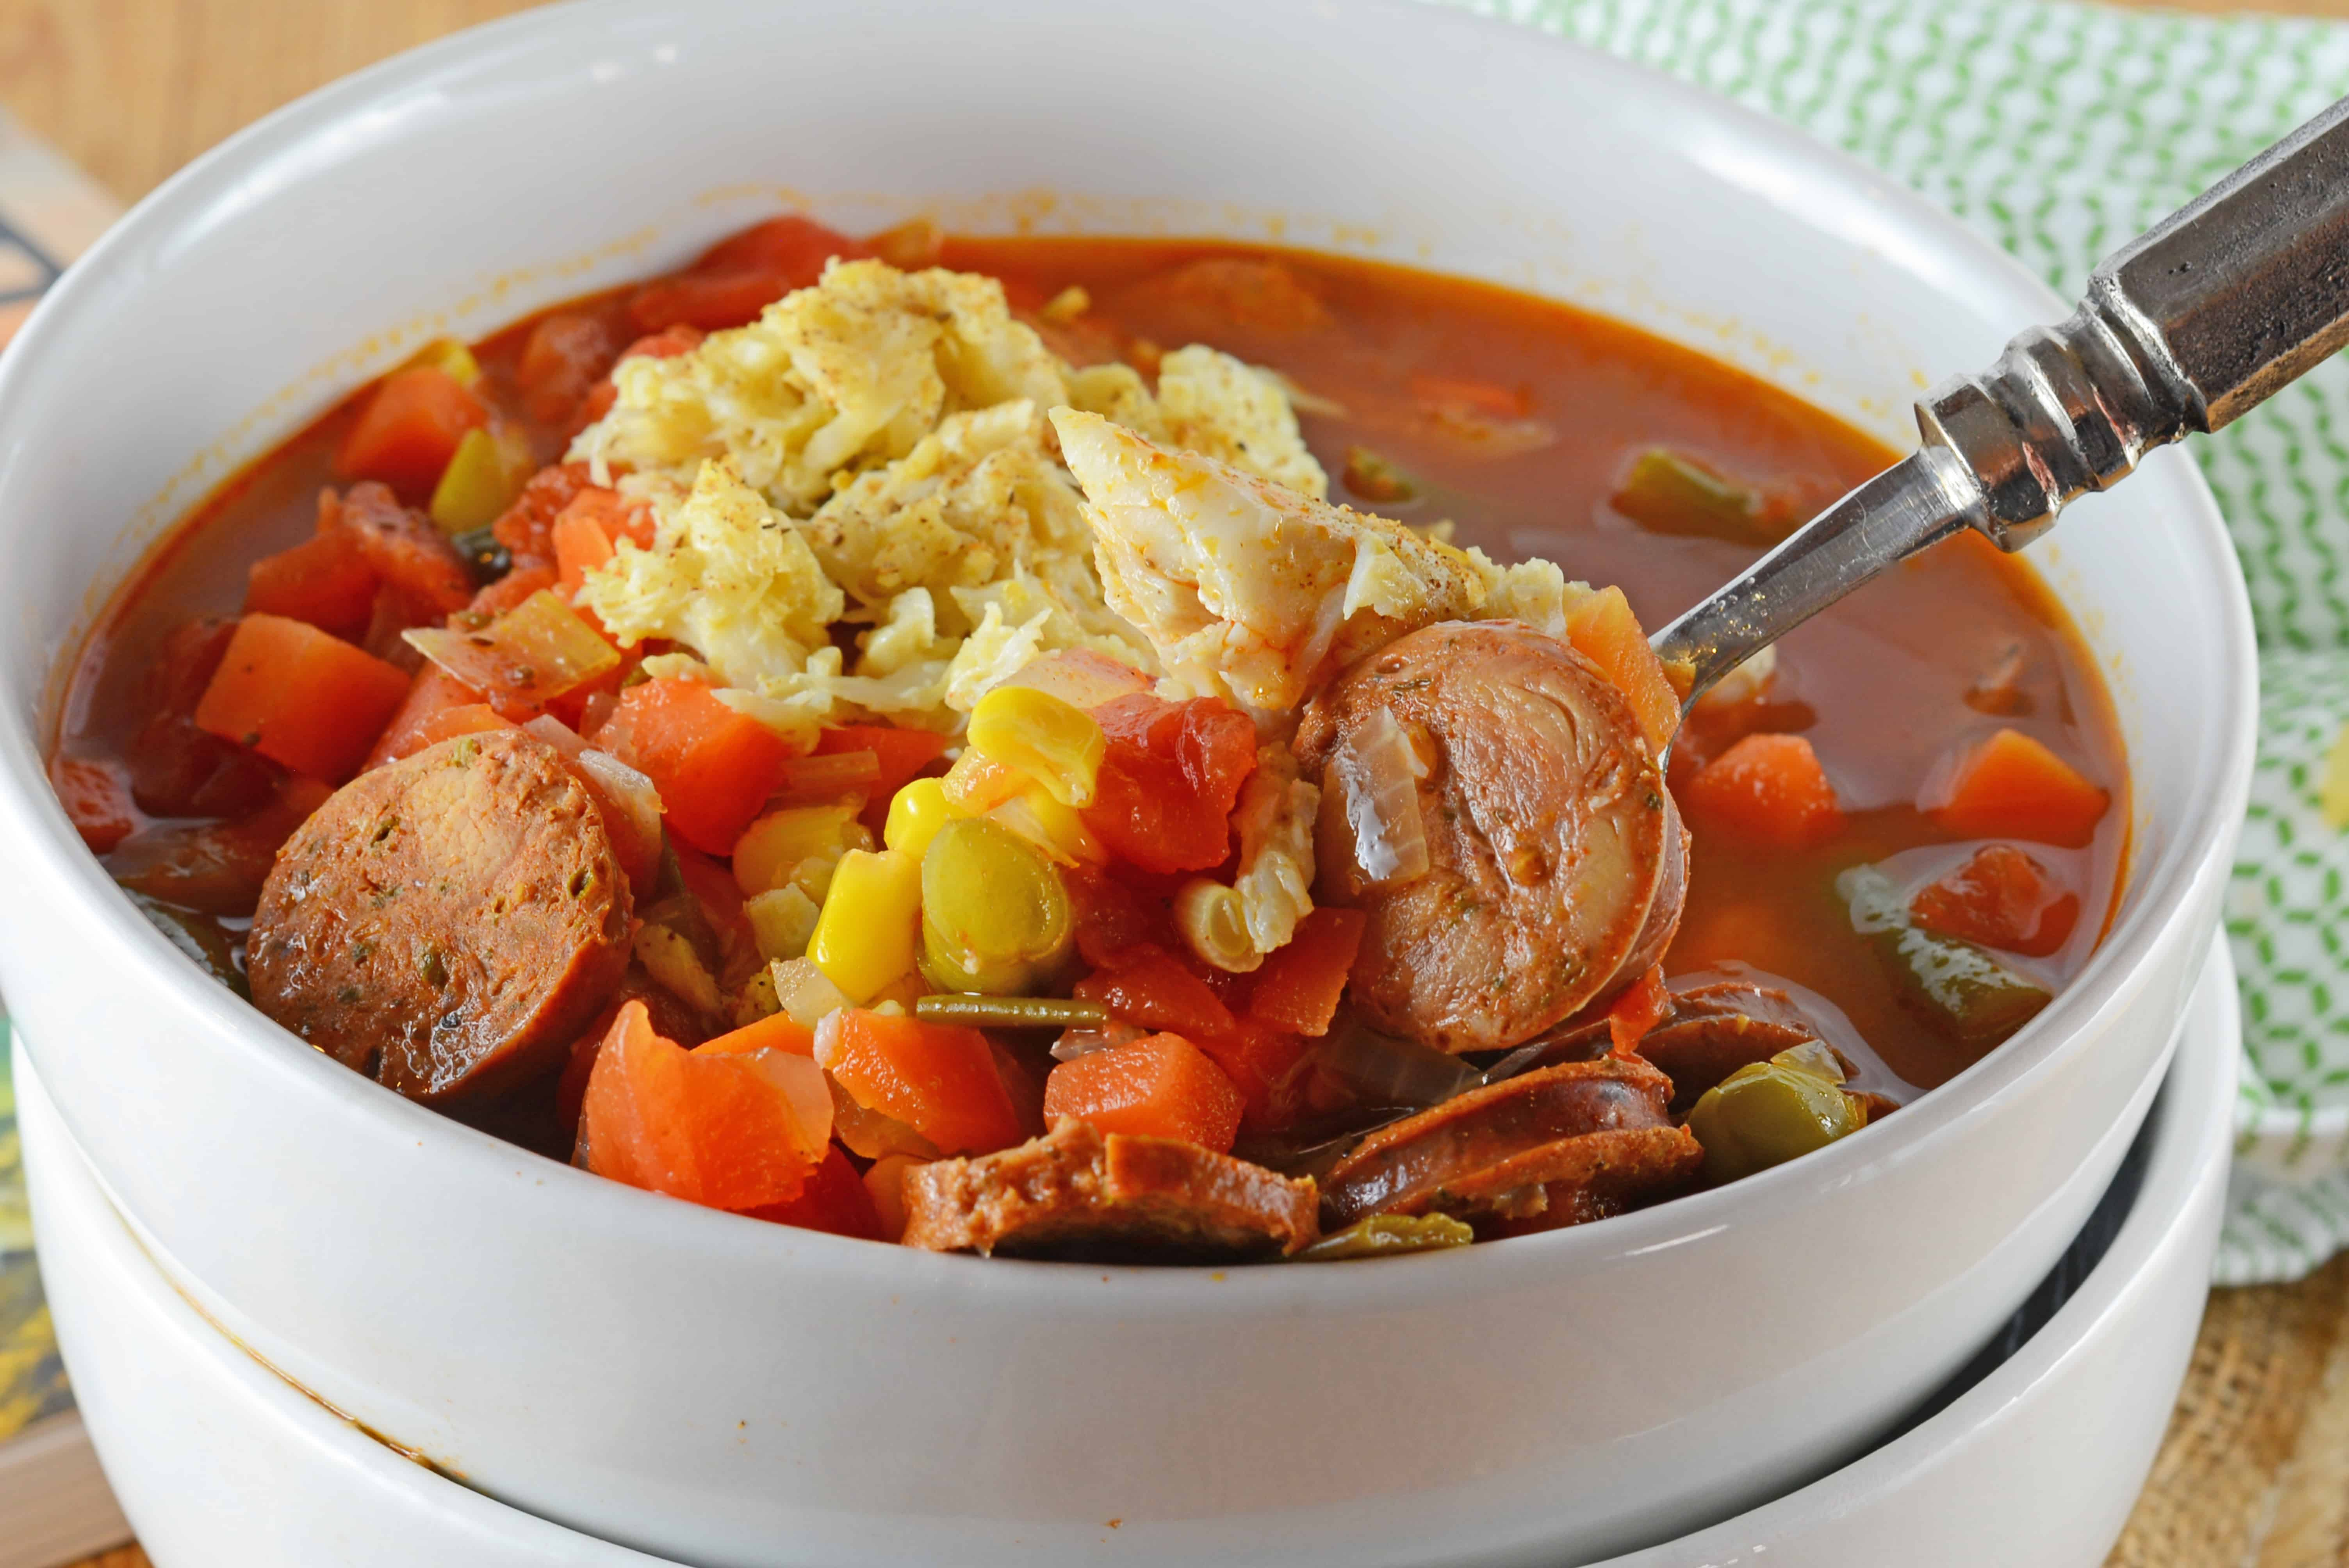 Spicy Crab and Sausage Soup is a quick, easy and flavorful appetizer or dinner recipes. Full of vegetables, sausage and crab, you can't go wrong!